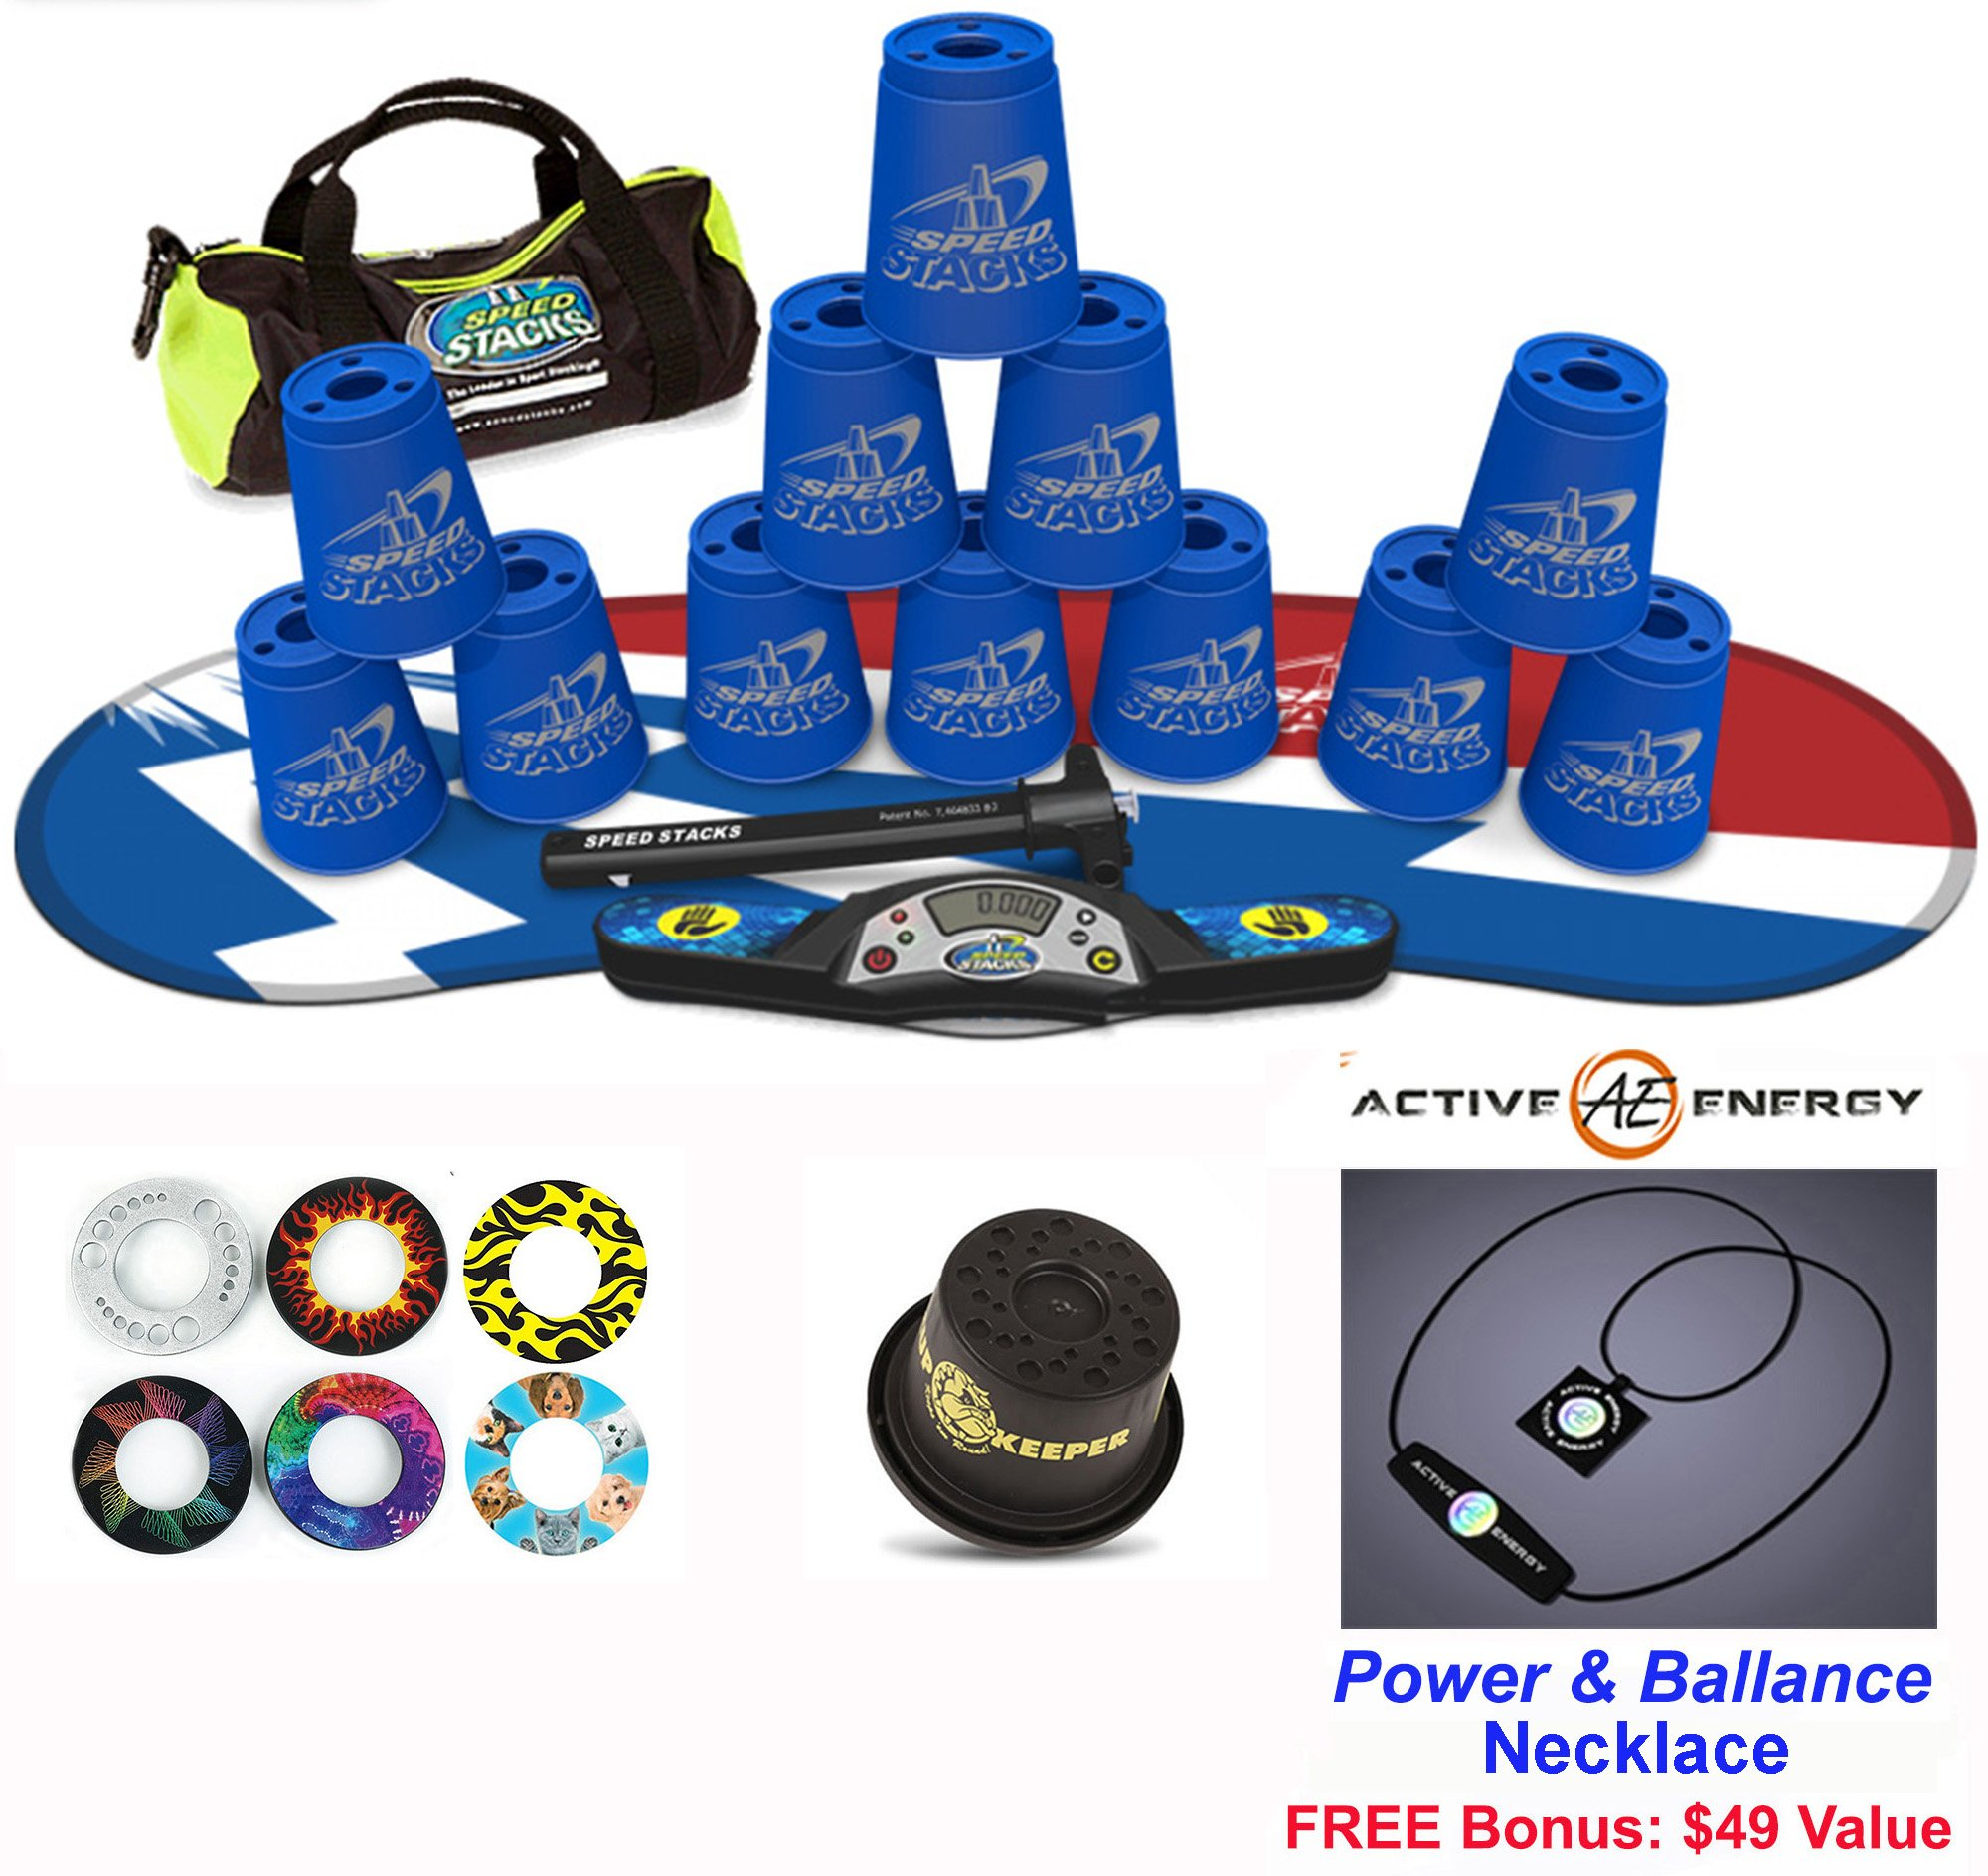 Speed Stacks Combo Set 'The Works'': 12 BLUE 4'' Cups, Atomic Punch Gen 3 Mat, G4 Pro Timer, Cup Keeper, Stem, Gear Bag + Active Energy Necklace